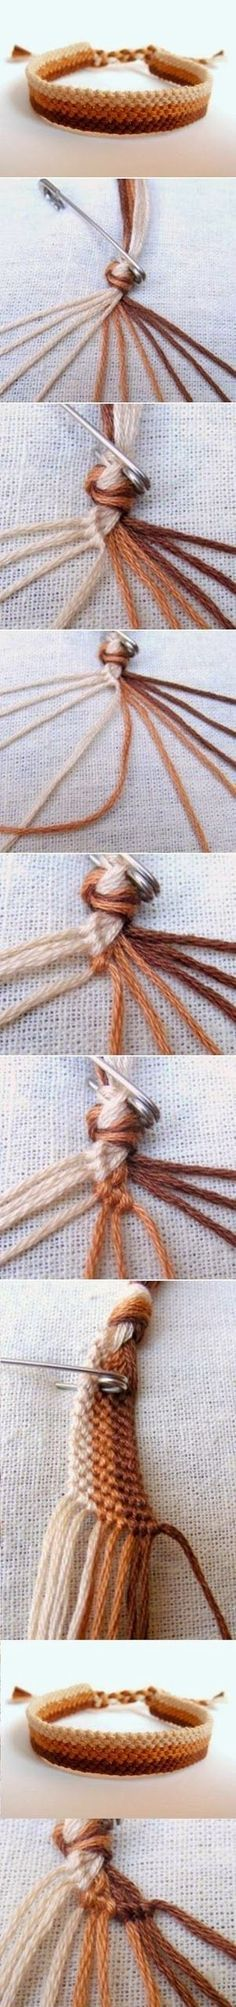 DIY : Easy Weave Bracelet | DIY & Crafts Tutorials #DIY by bleu.